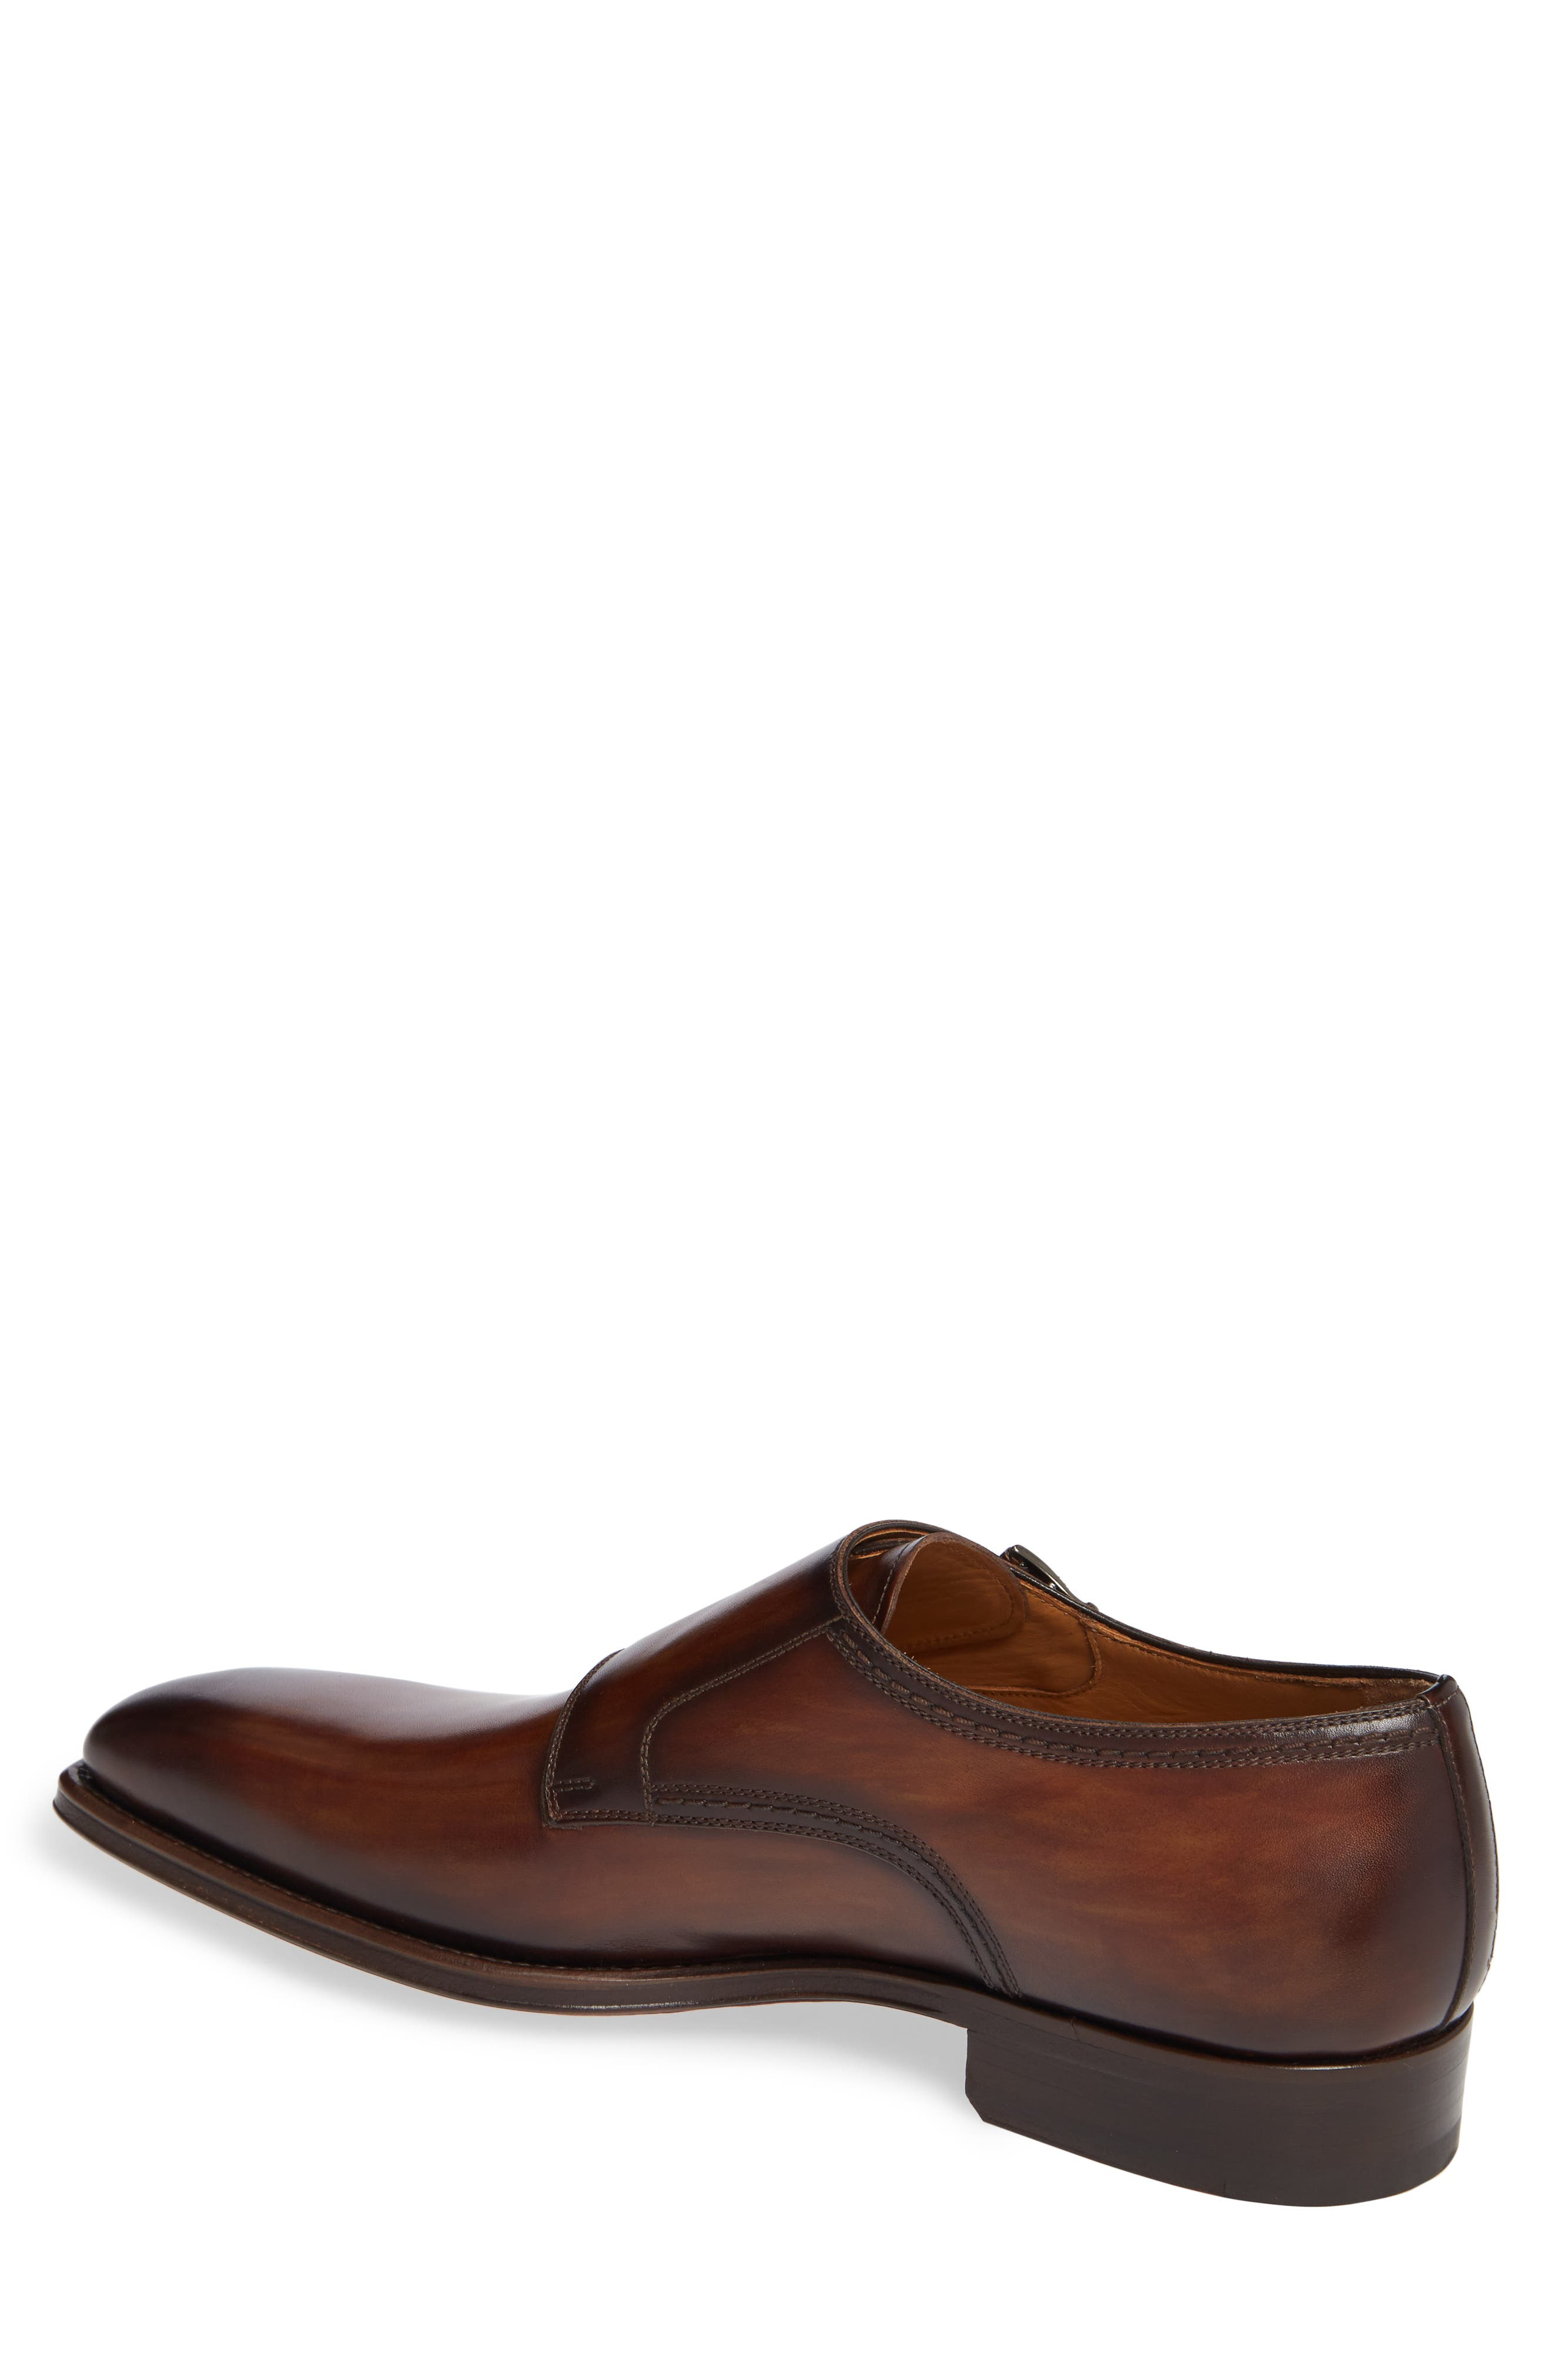 Landon Double Strap Monk Shoe,                             Alternate thumbnail 2, color,                             TOBACCO LEATHER